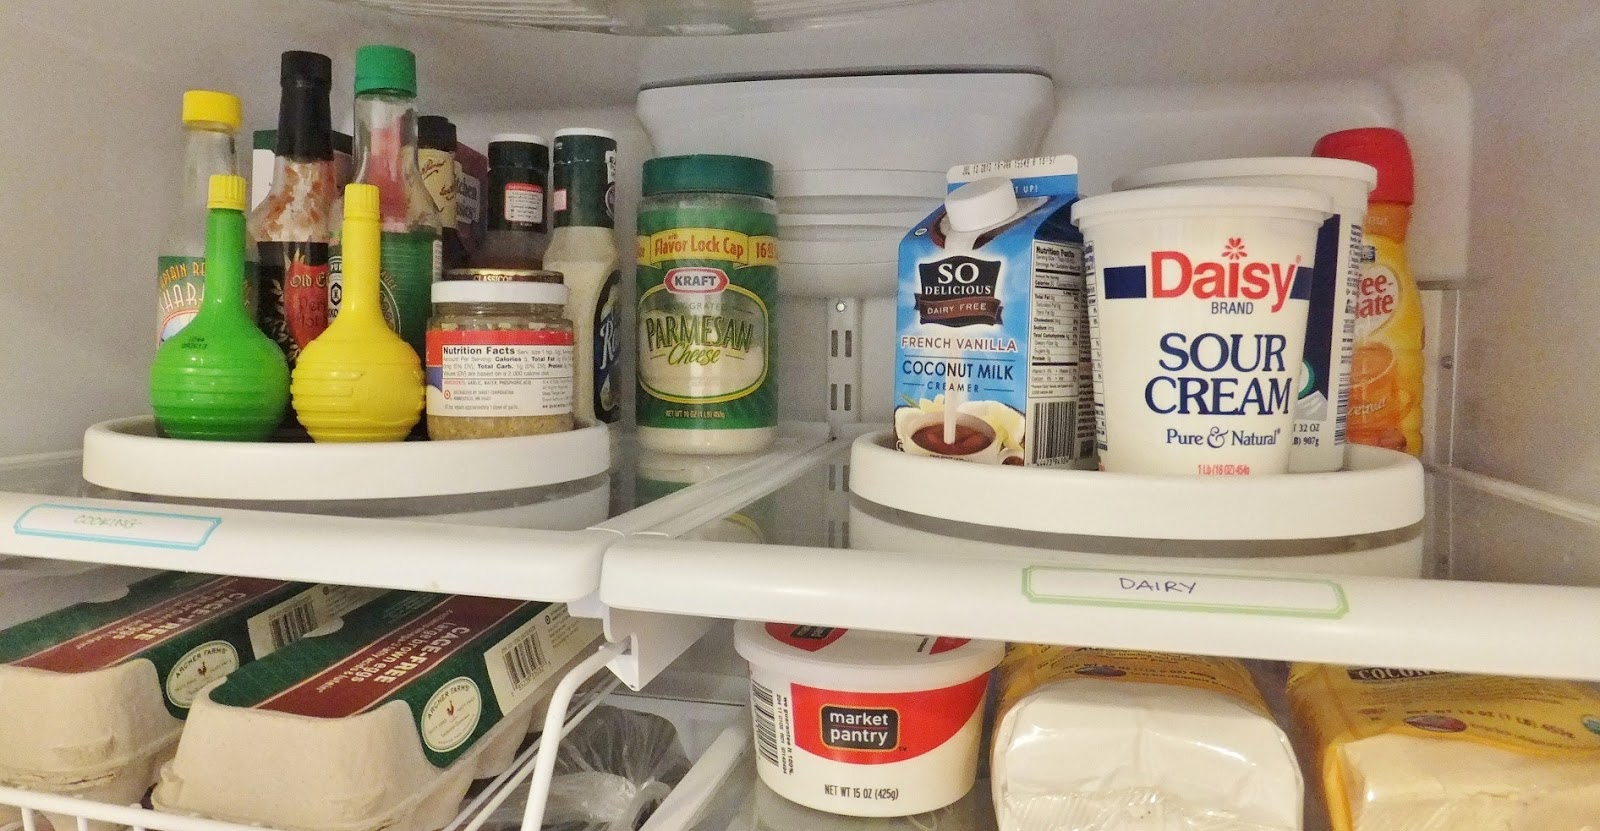 Greatest 12 Ideas for Organizing Your Refrigerator - The Budget Diet XN29